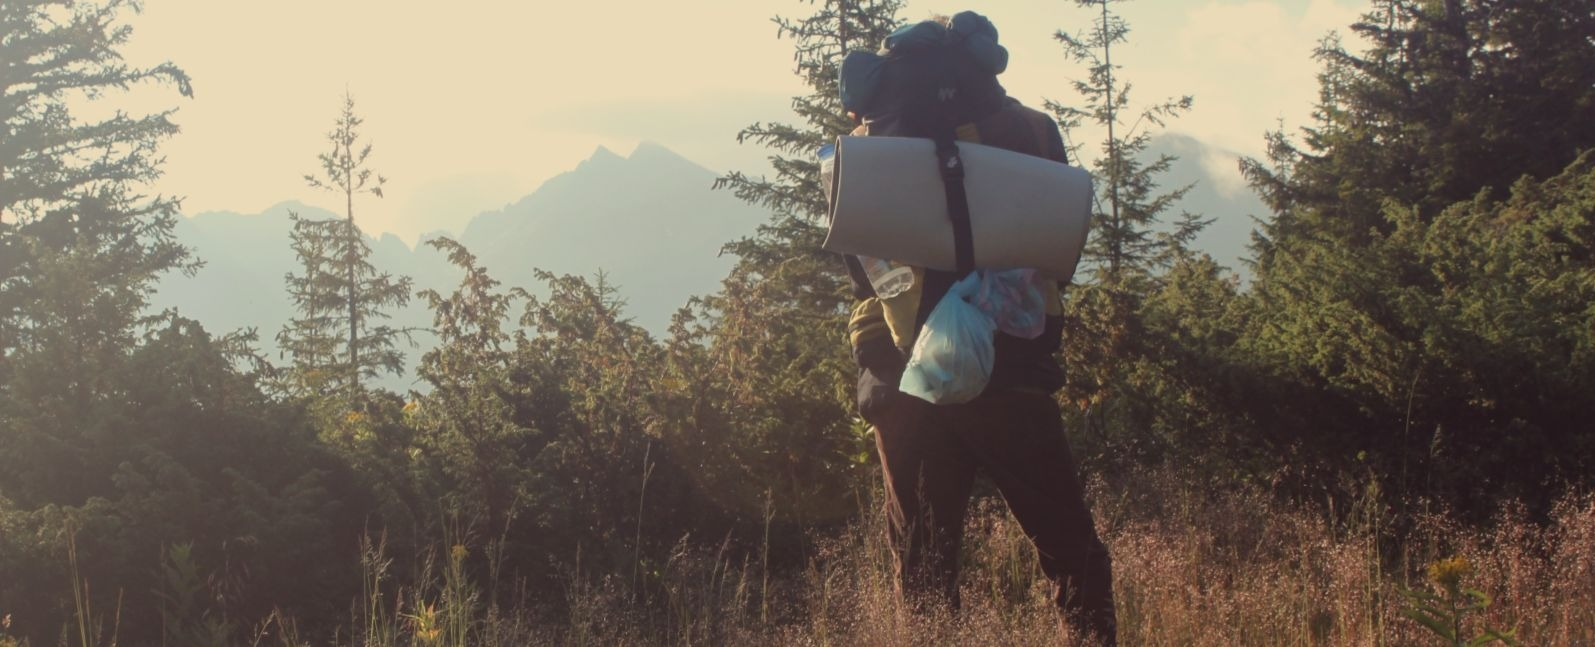 How to Choose The Perfect Sleeping Bag For Your Night in the Wilderness